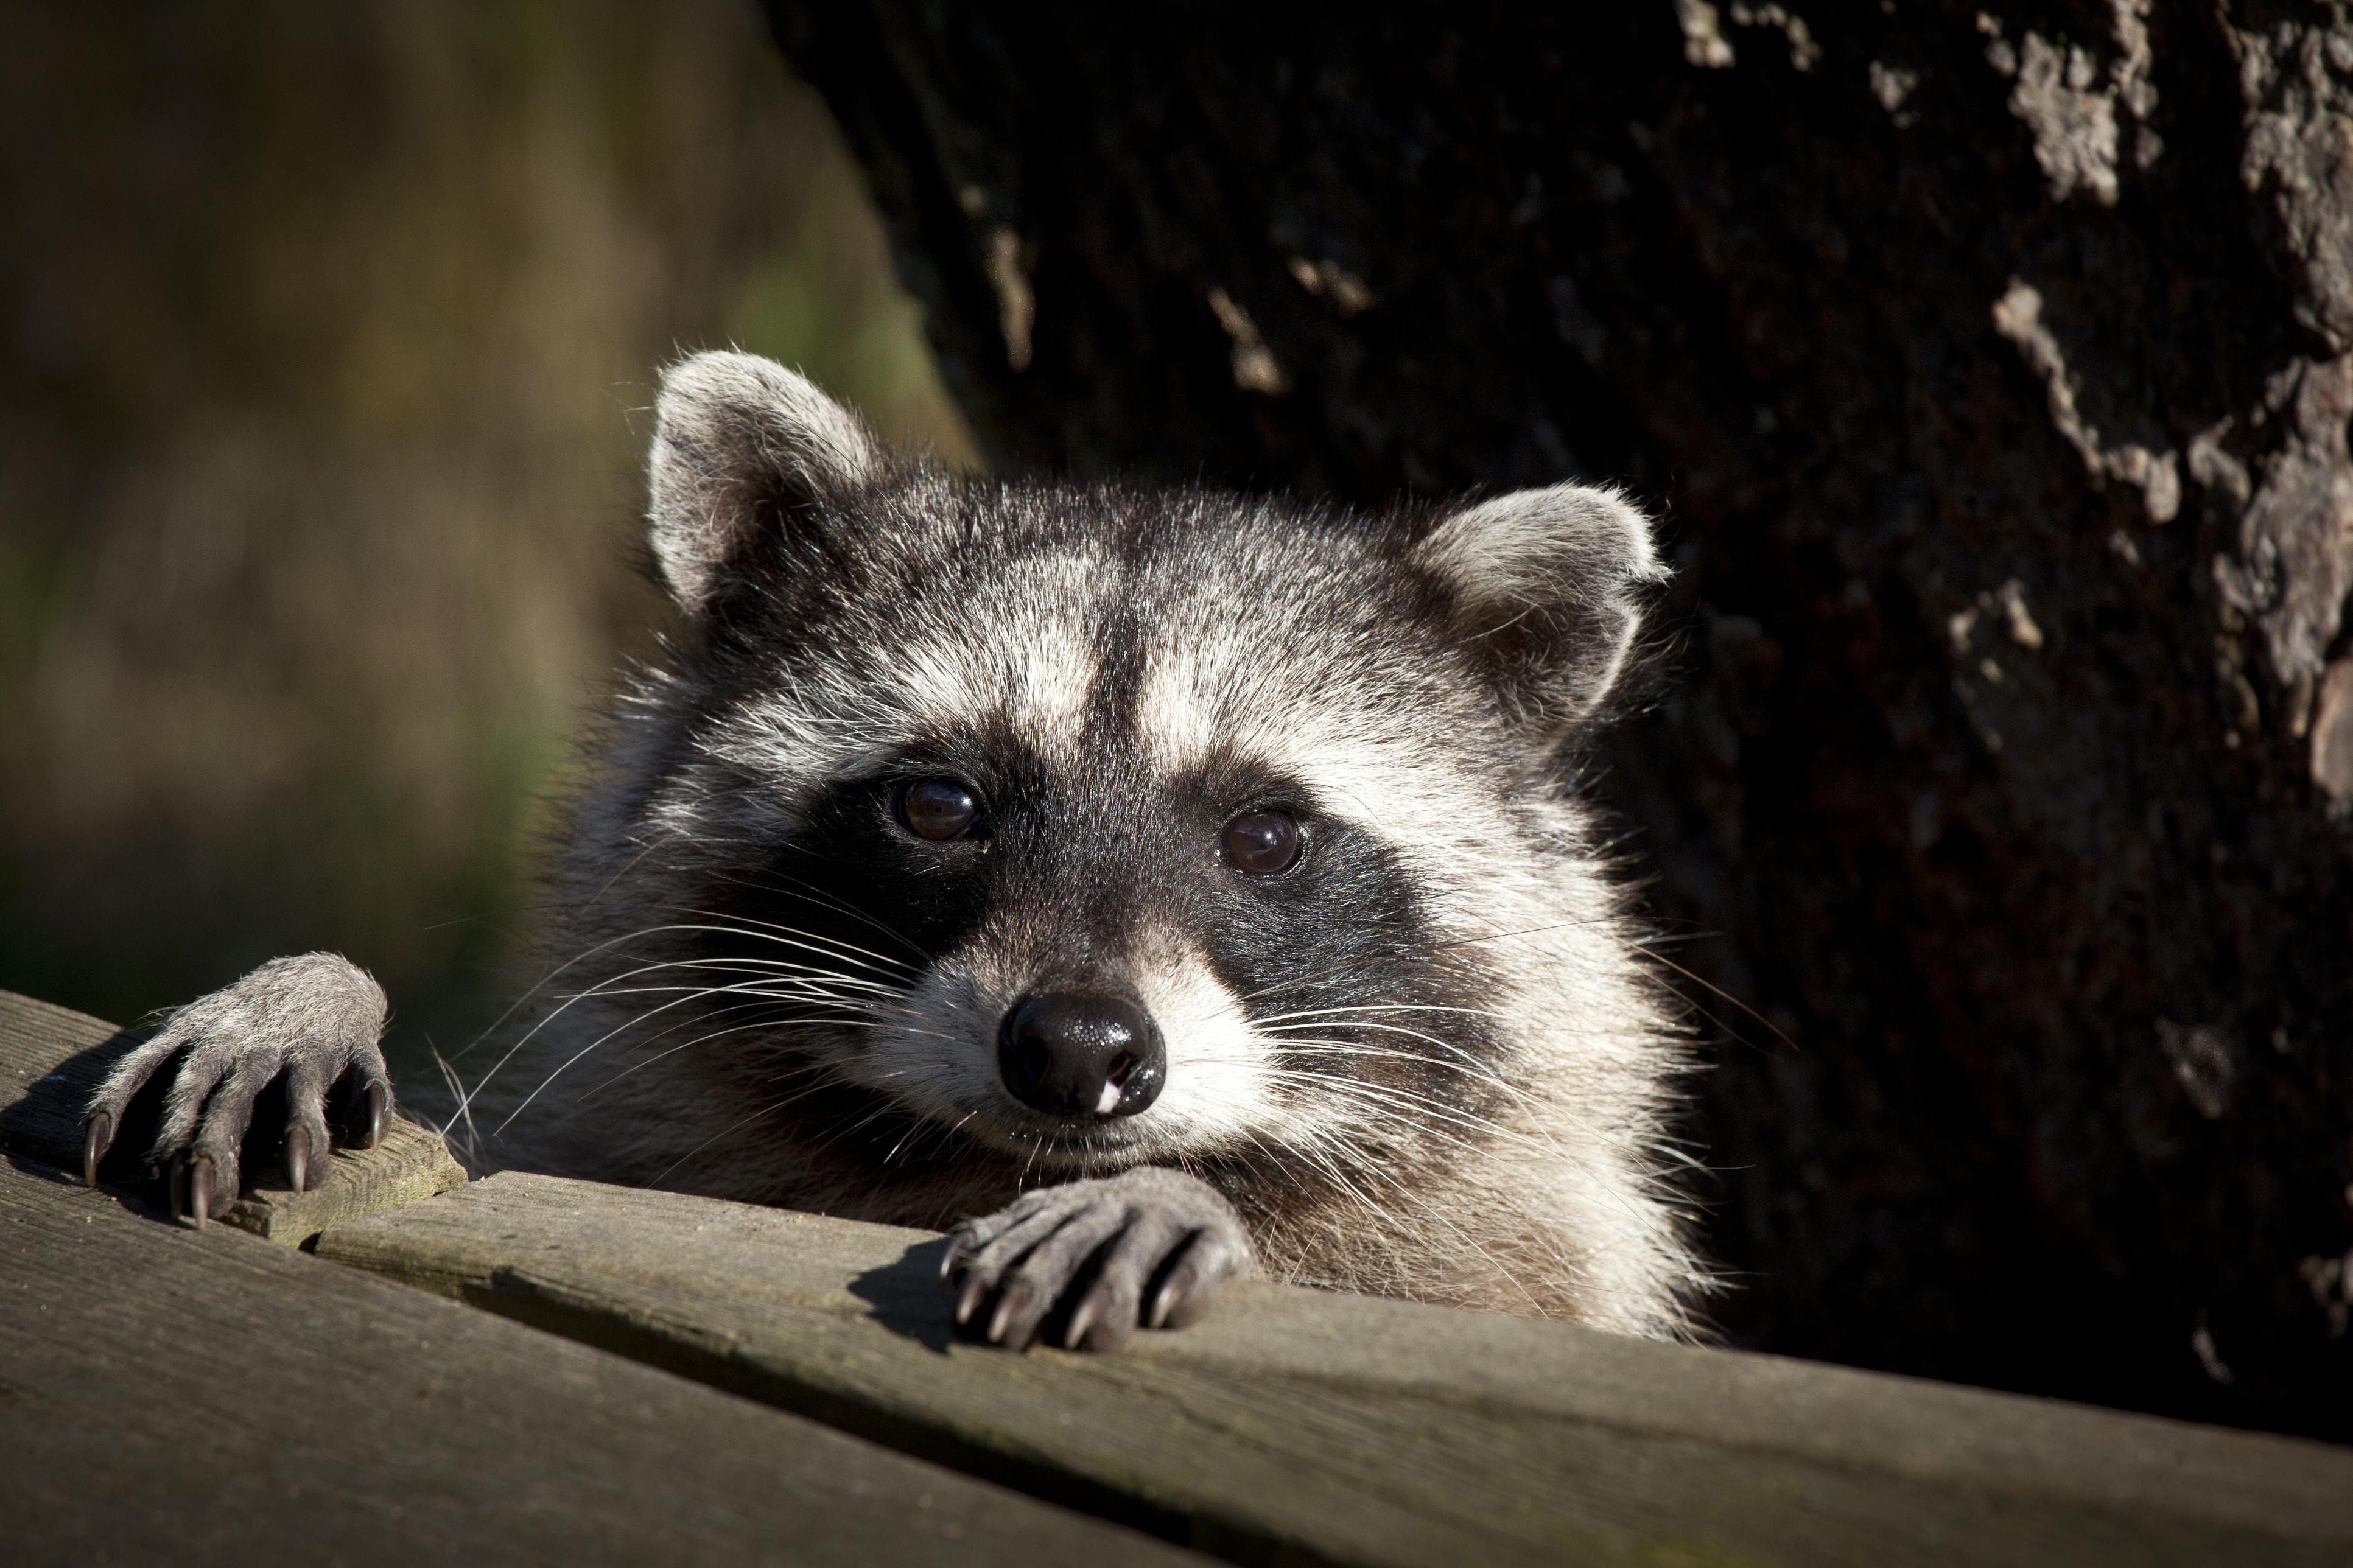 Do raccoons house regular apartments, if so, in what way